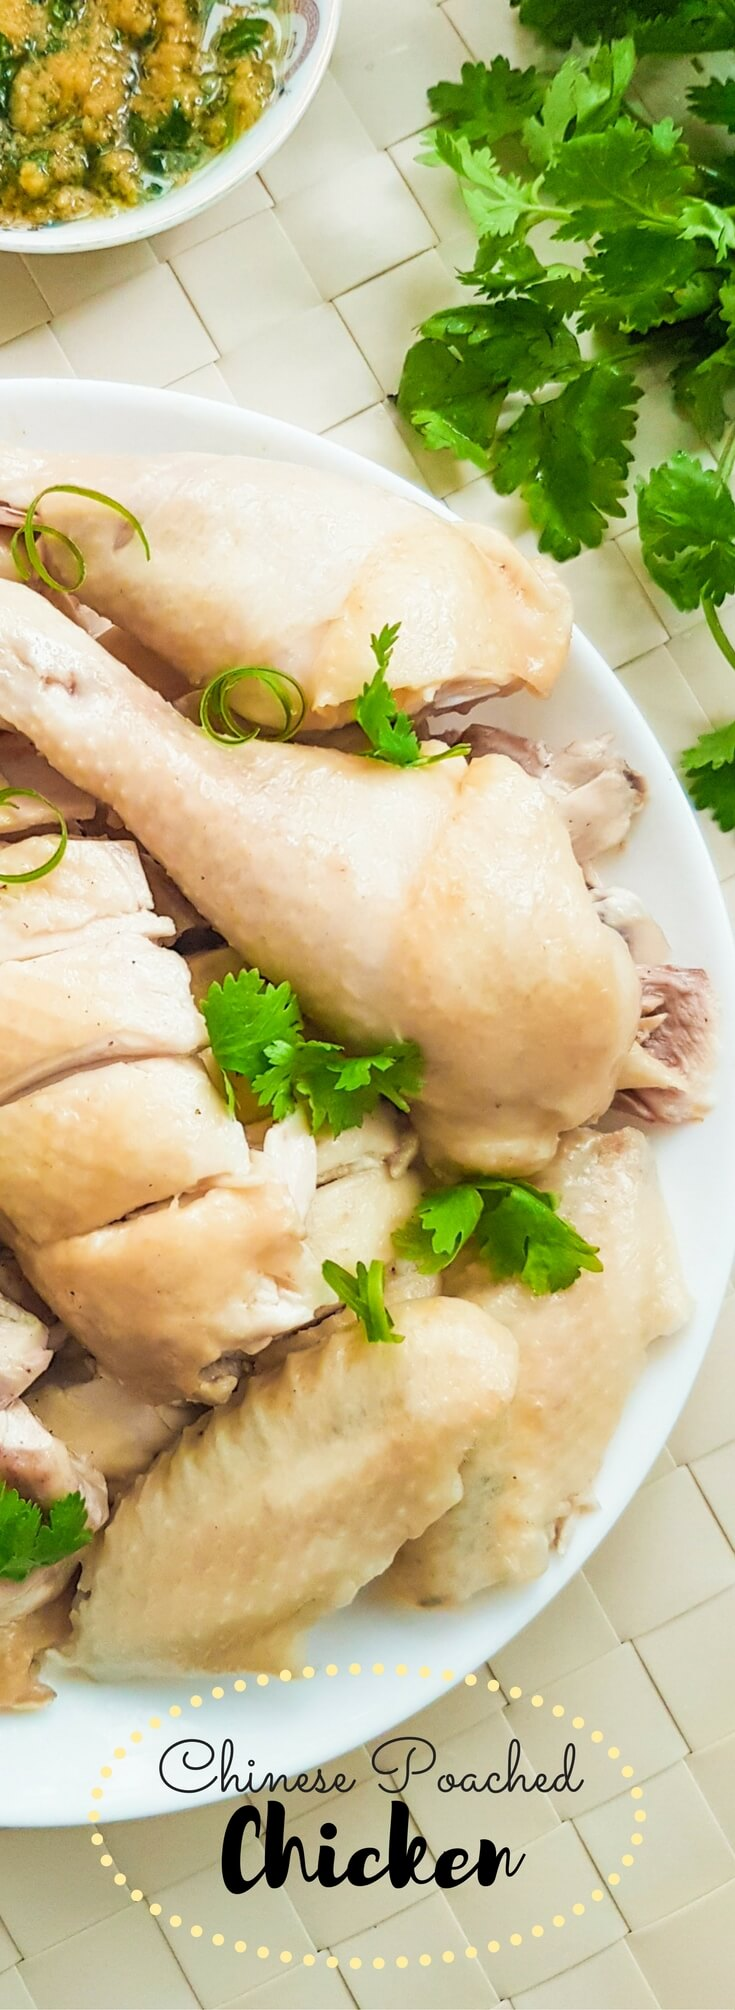 Chinese poached chicken